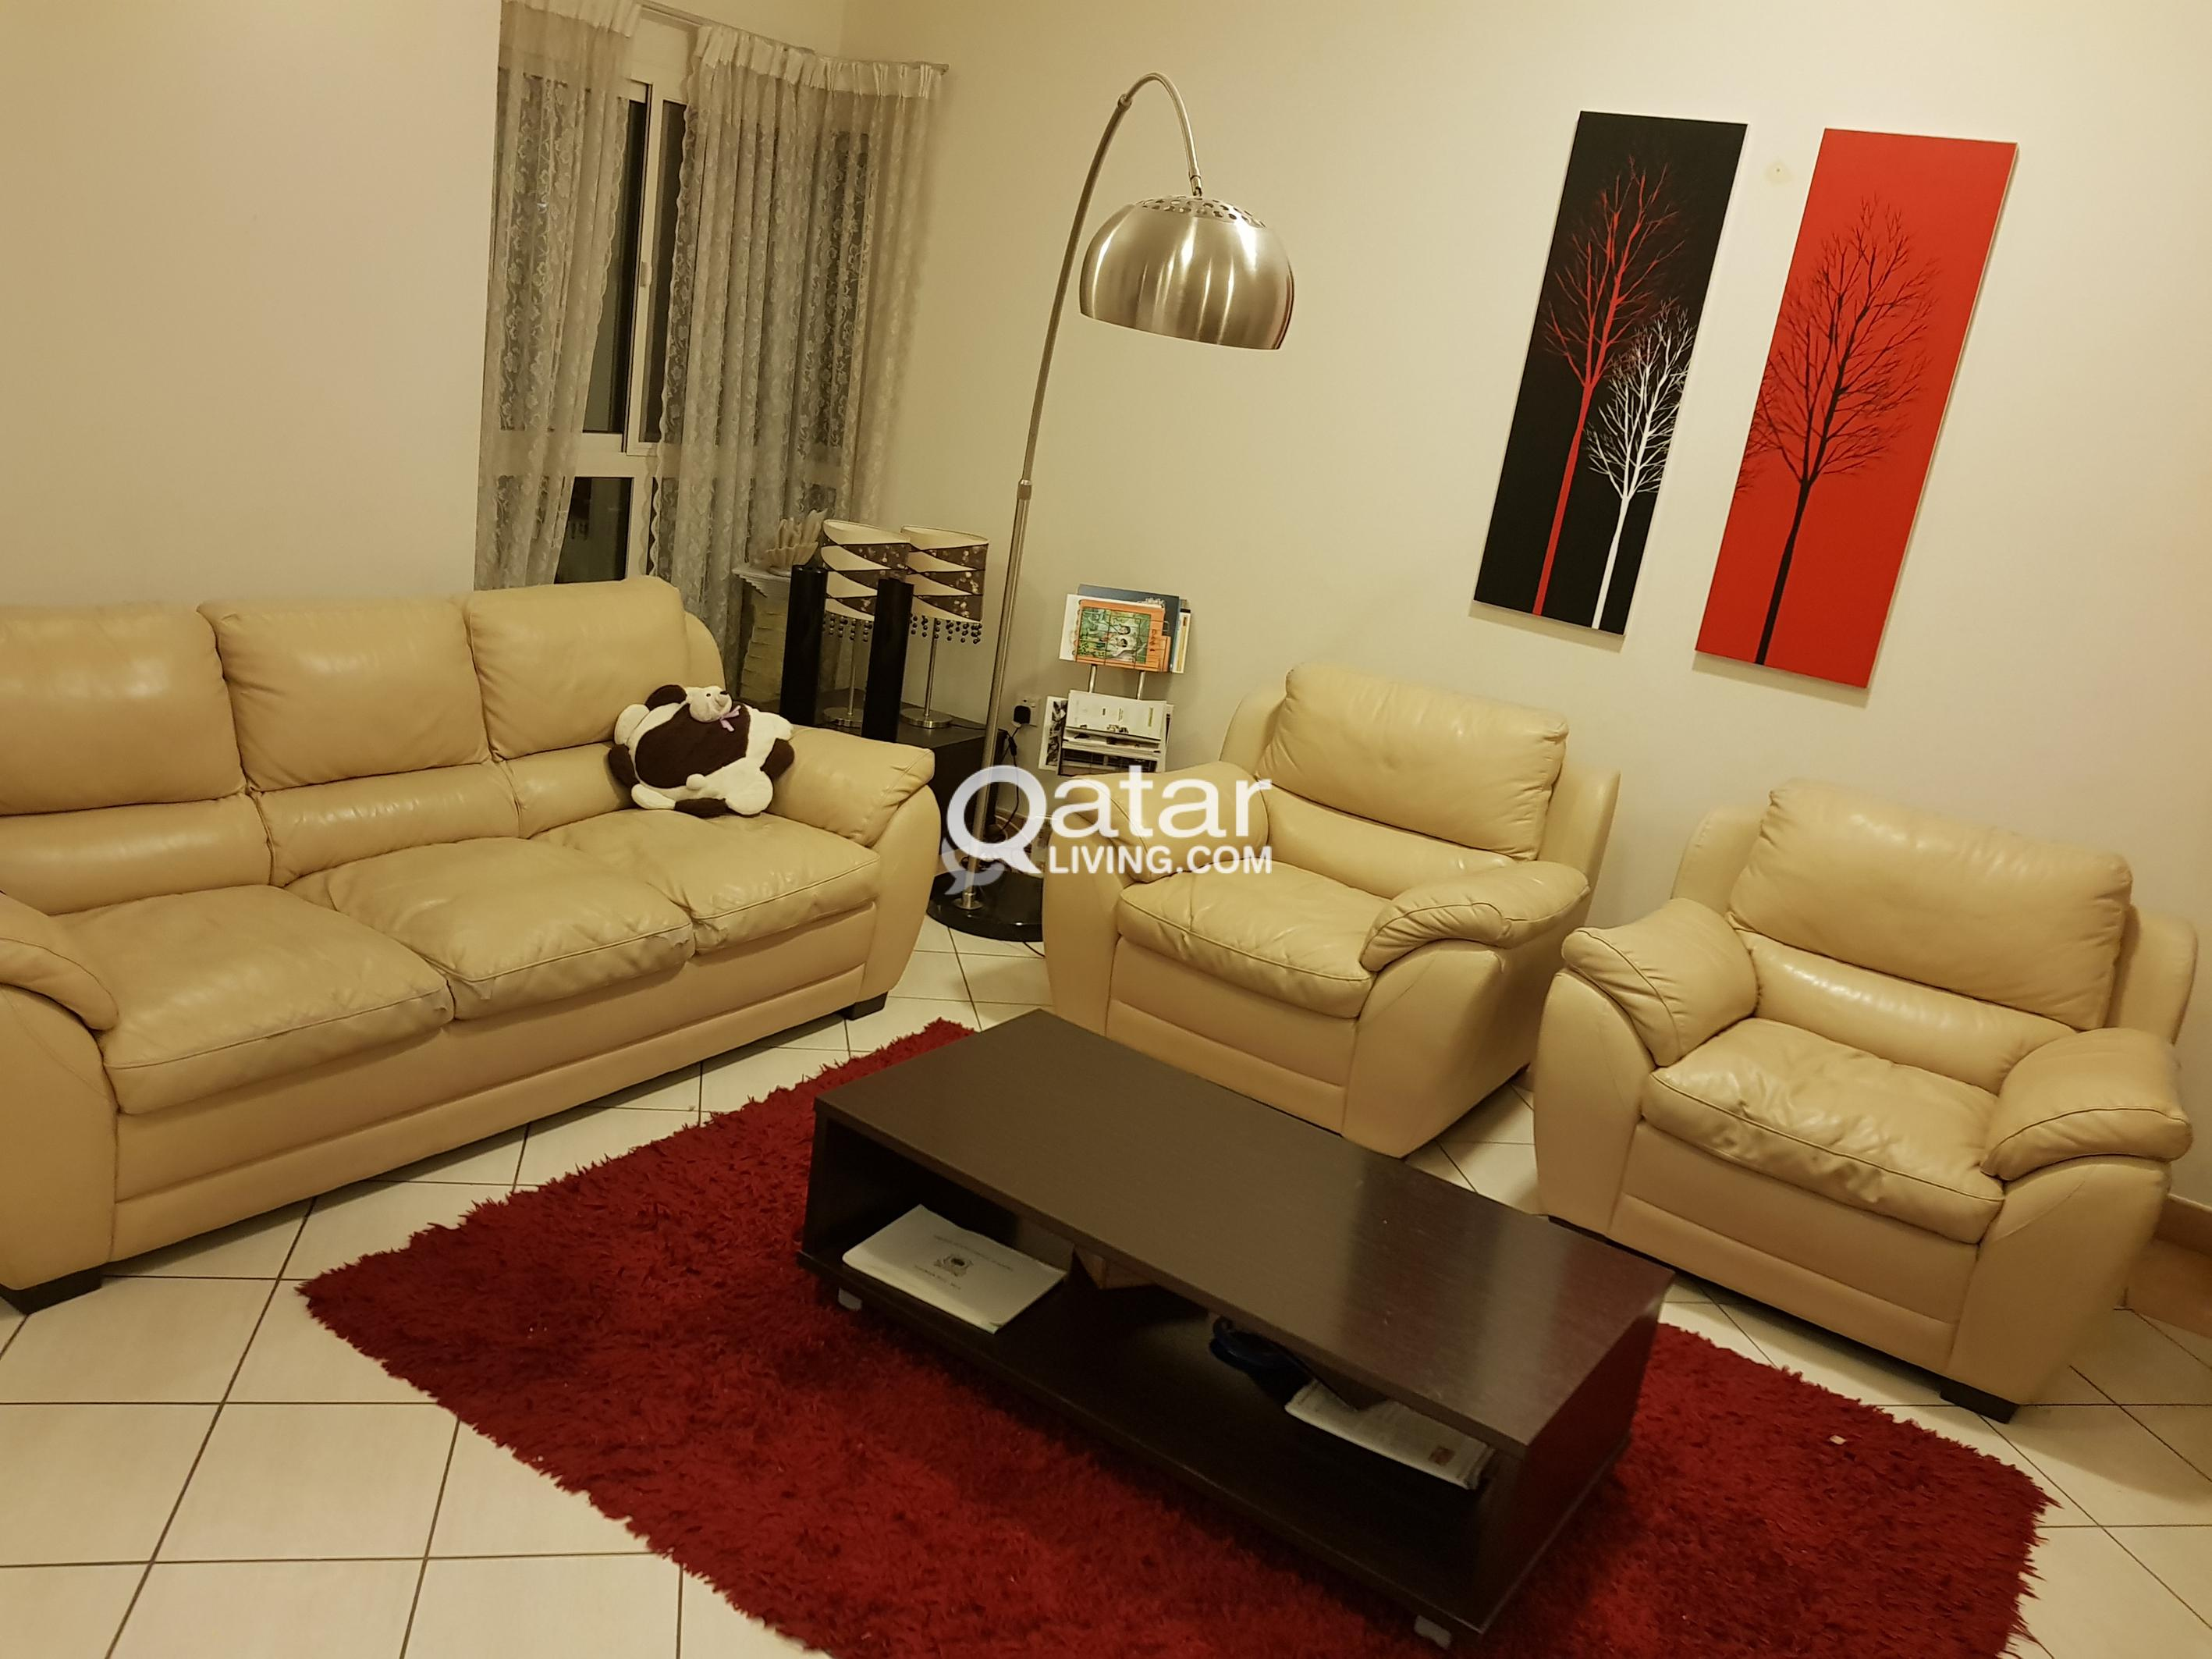 Sofa Set Price In Qatar Home Center Leather Sofa Set 3 431 431 And Coffee Table